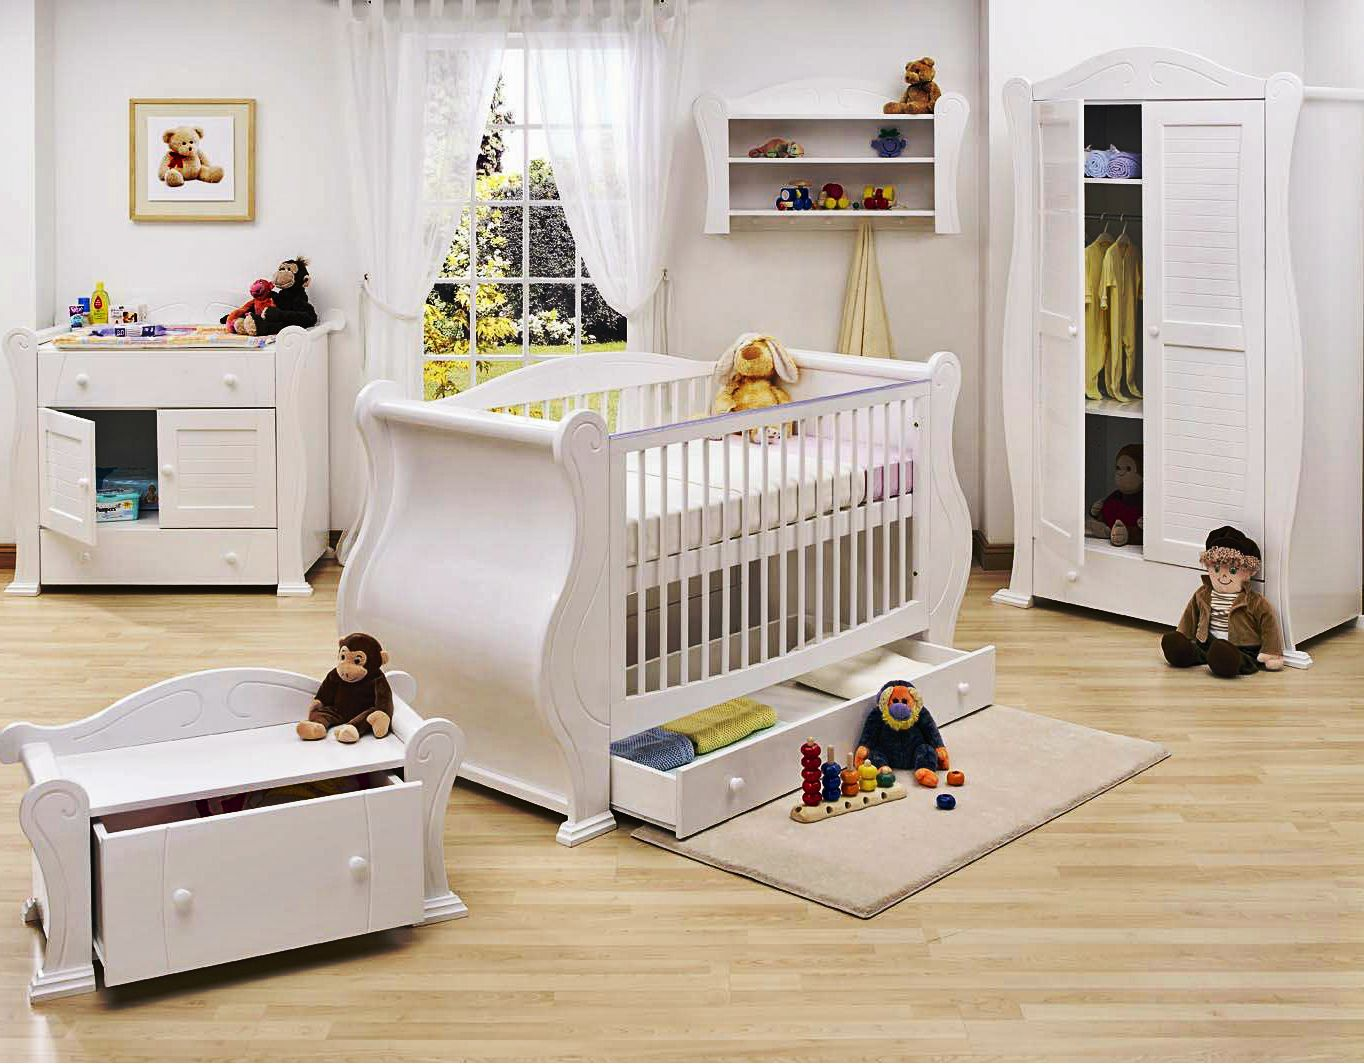 Buy Furniture at Baby Furniture Warehouse | Furniture | Pinterest